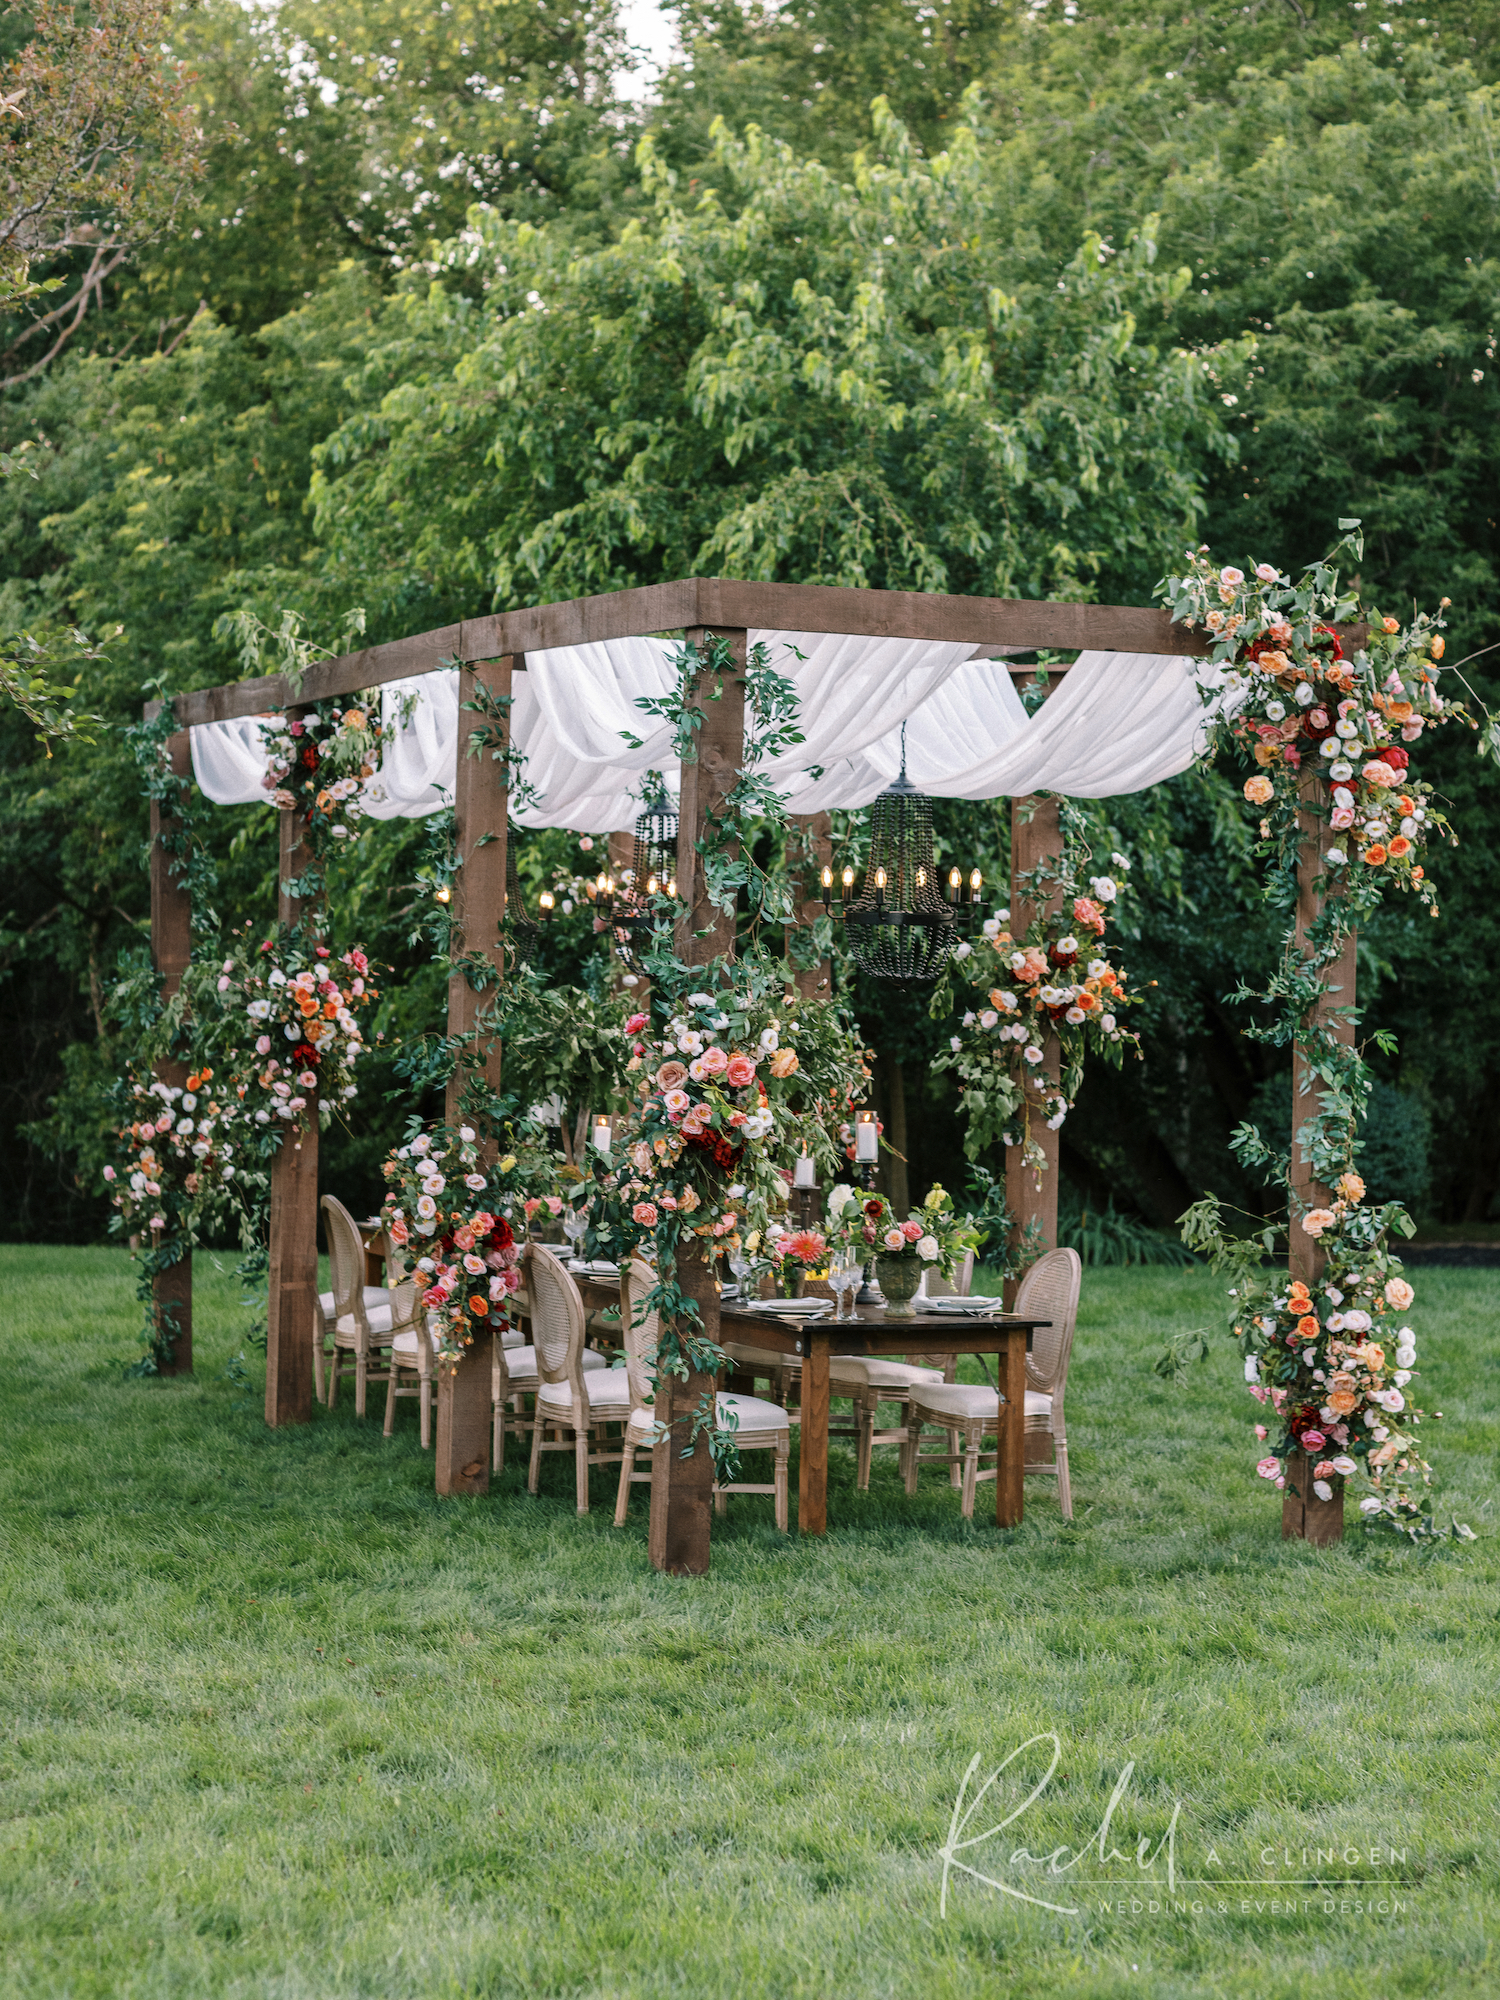 rachel a clingen backyard elfresco decor flowers